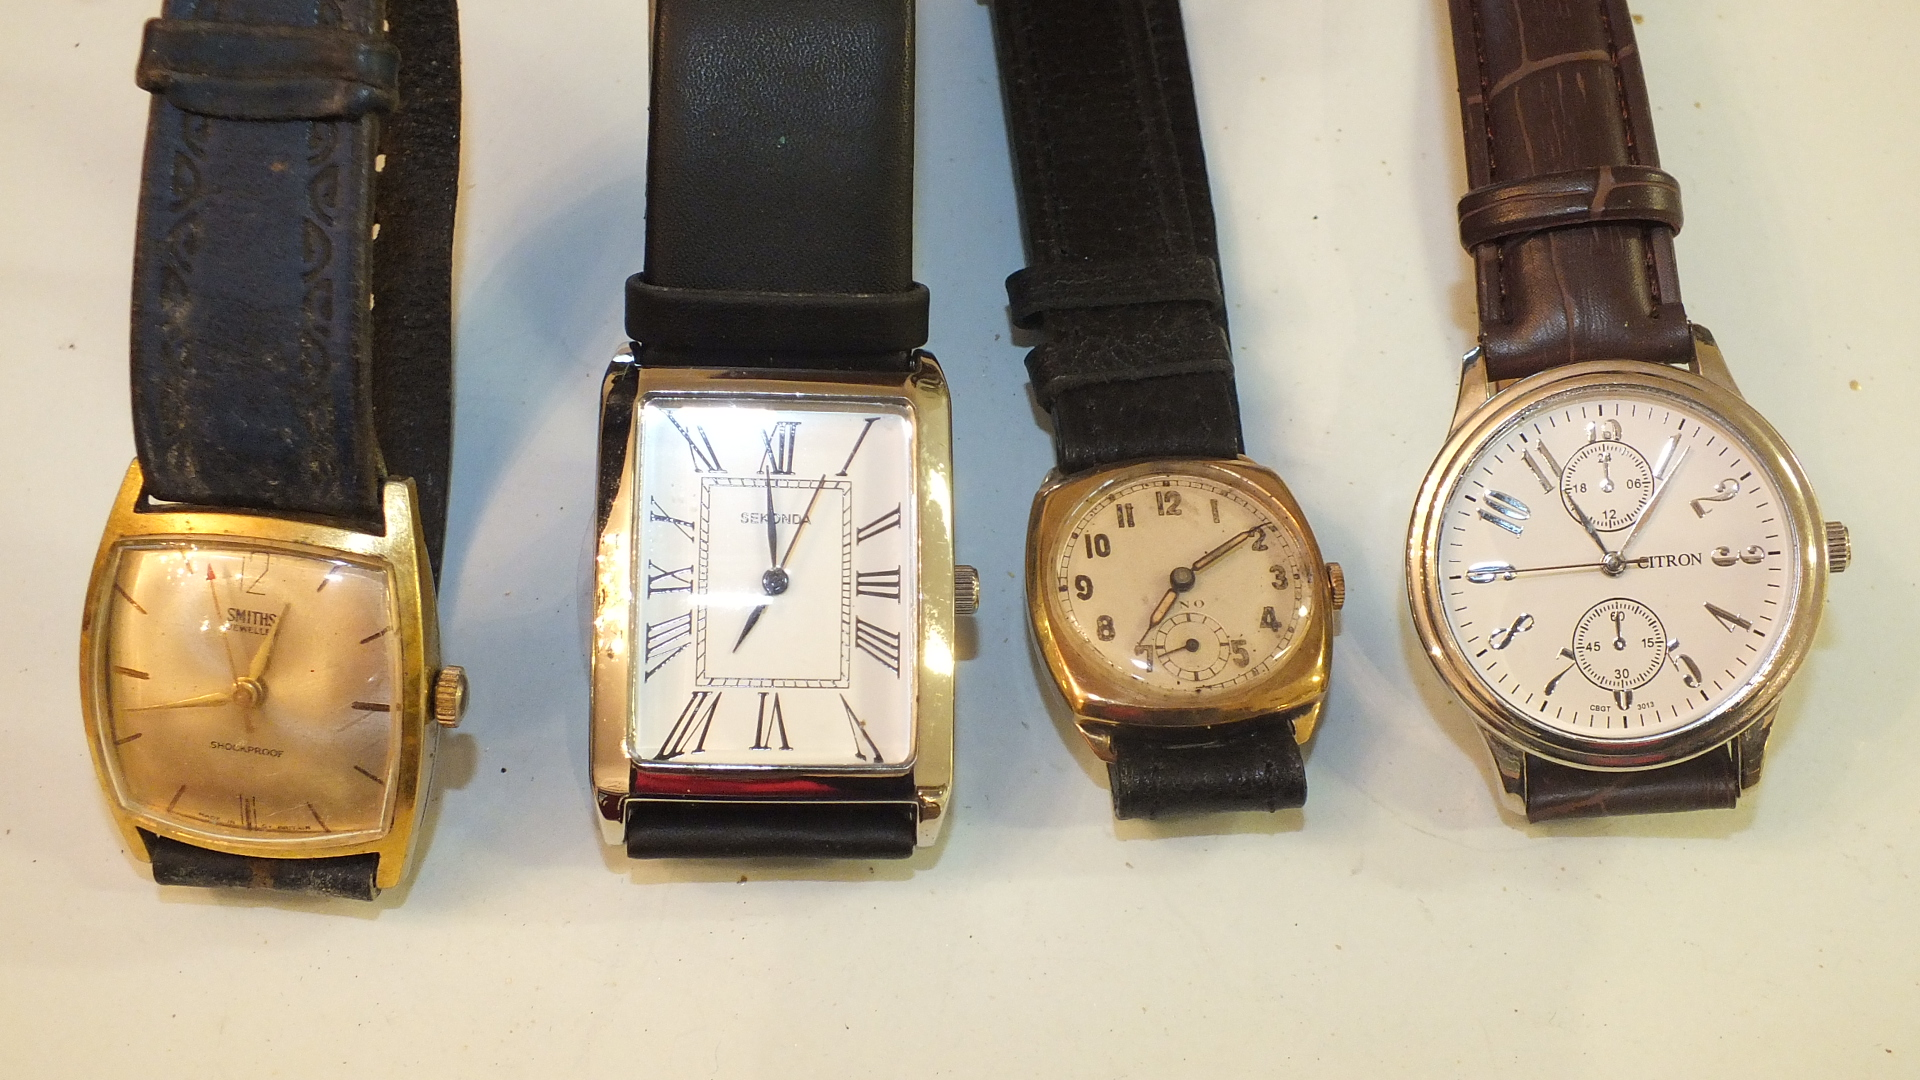 Lot 232 - A gent's 9ct gold cased wrist watch marked Uno and three other wrist watches.